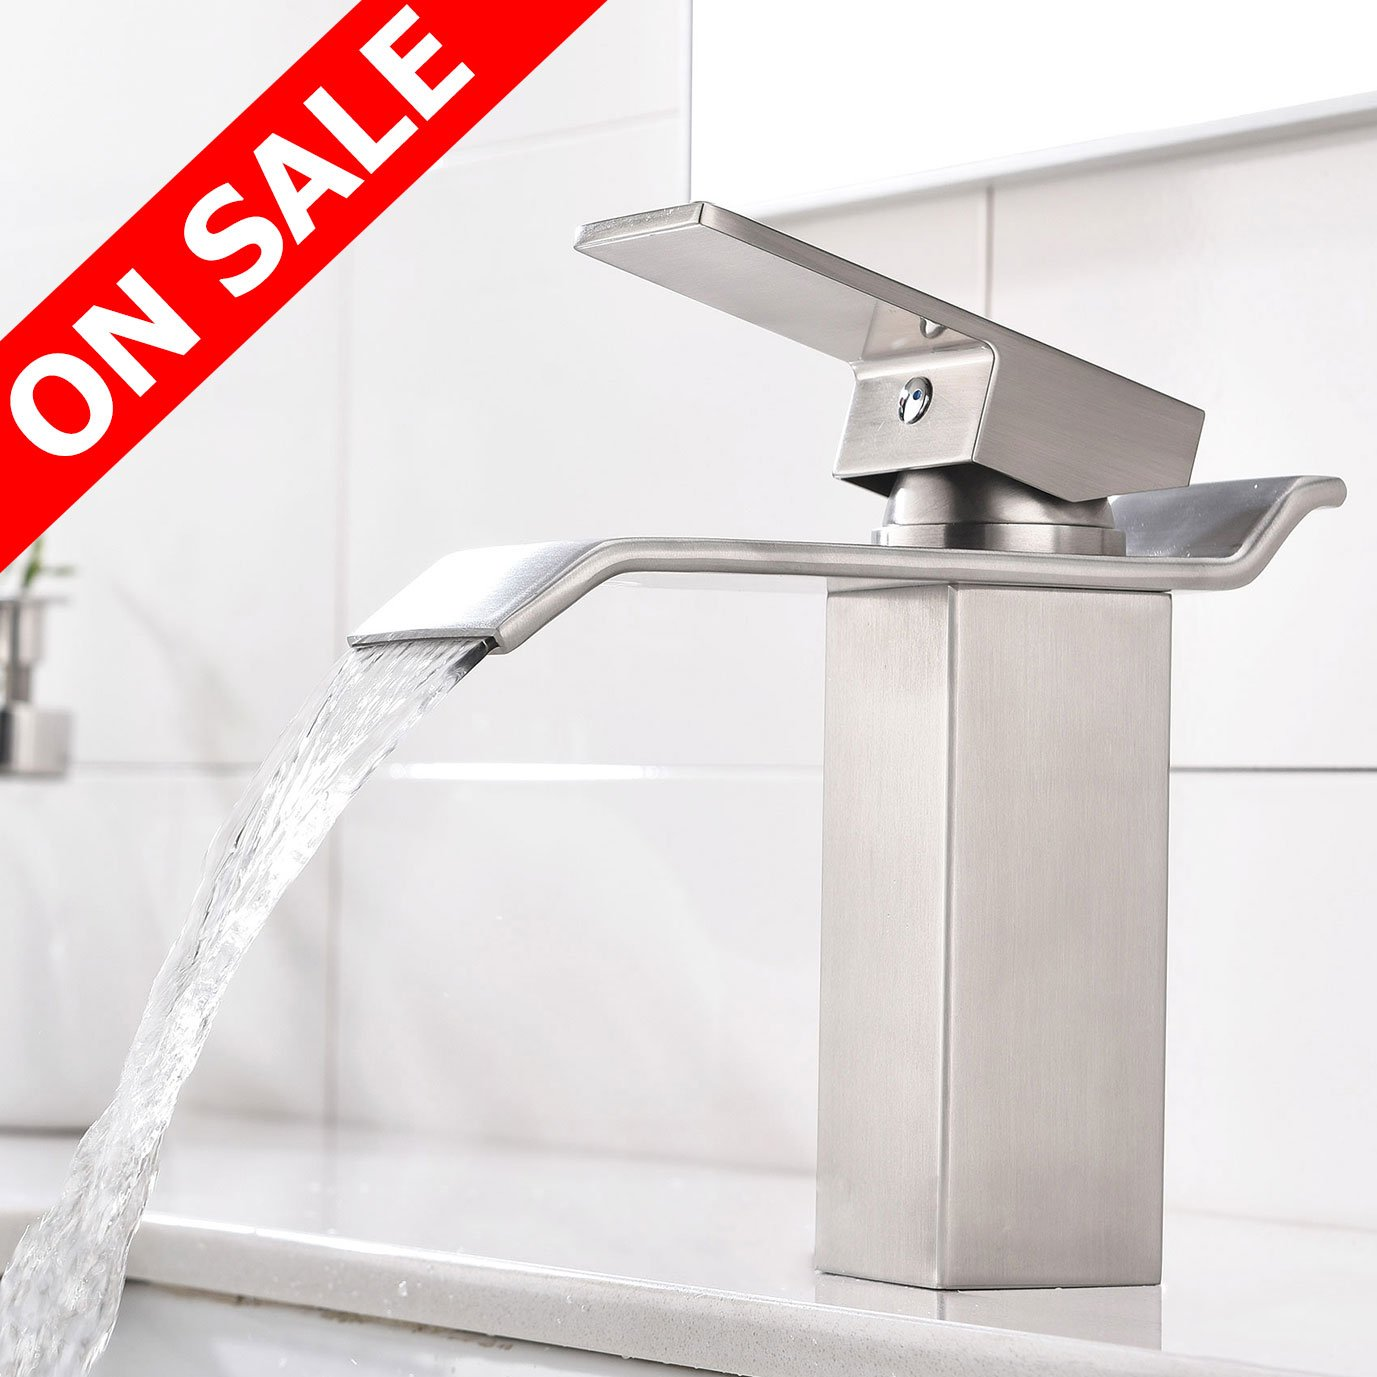 KINGO HOME Commercial Lavatory Vanity Single Handle Single Hole Brushed Nickel Waterfall Bathroom Faucet, Bathroom Sink Faucet with Extra Large Rectangular Spout